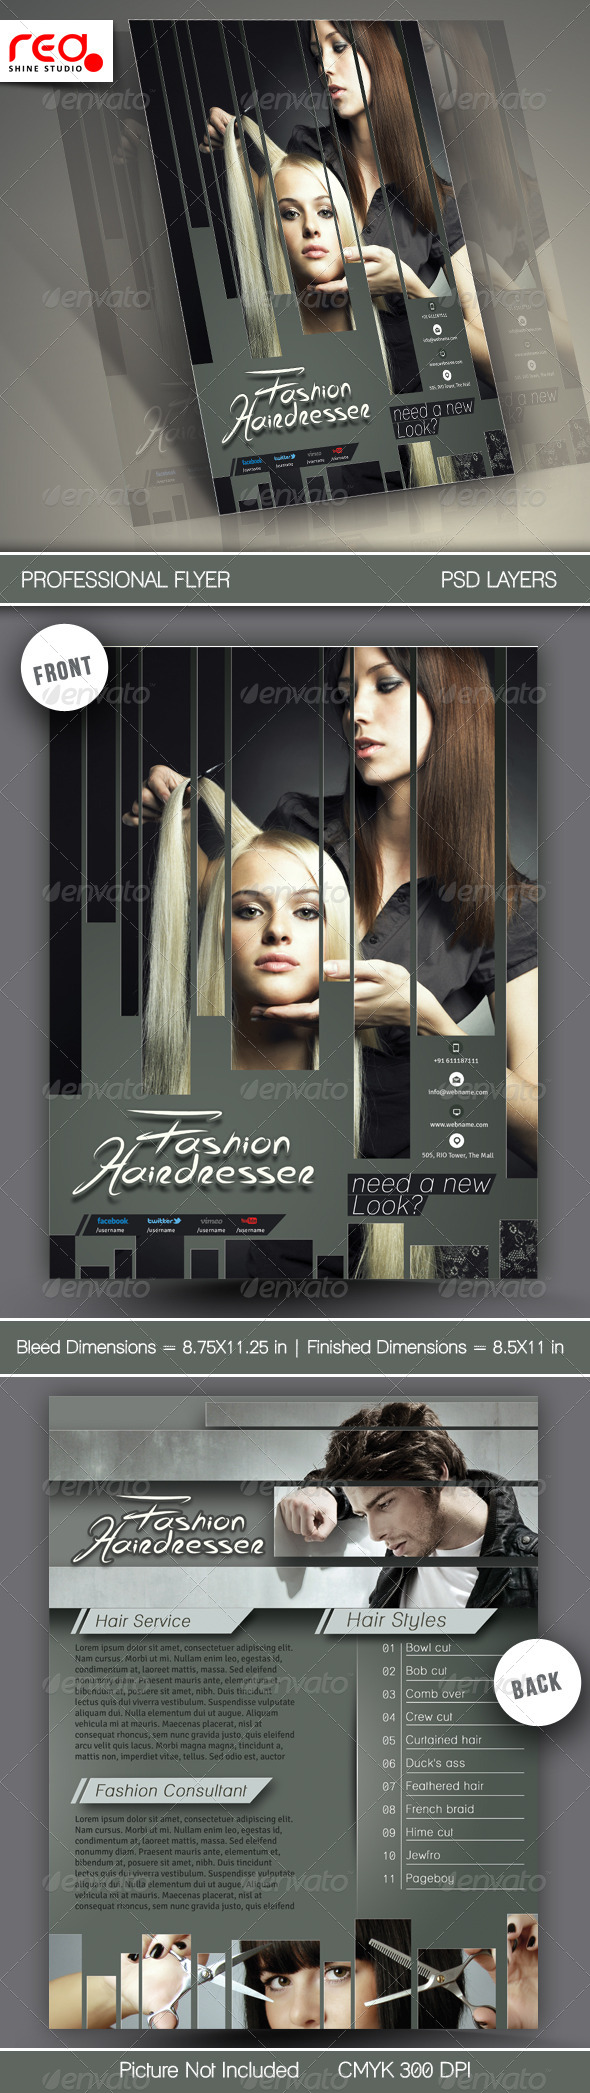 Hair Salons Flyer Template - Corporate Flyers